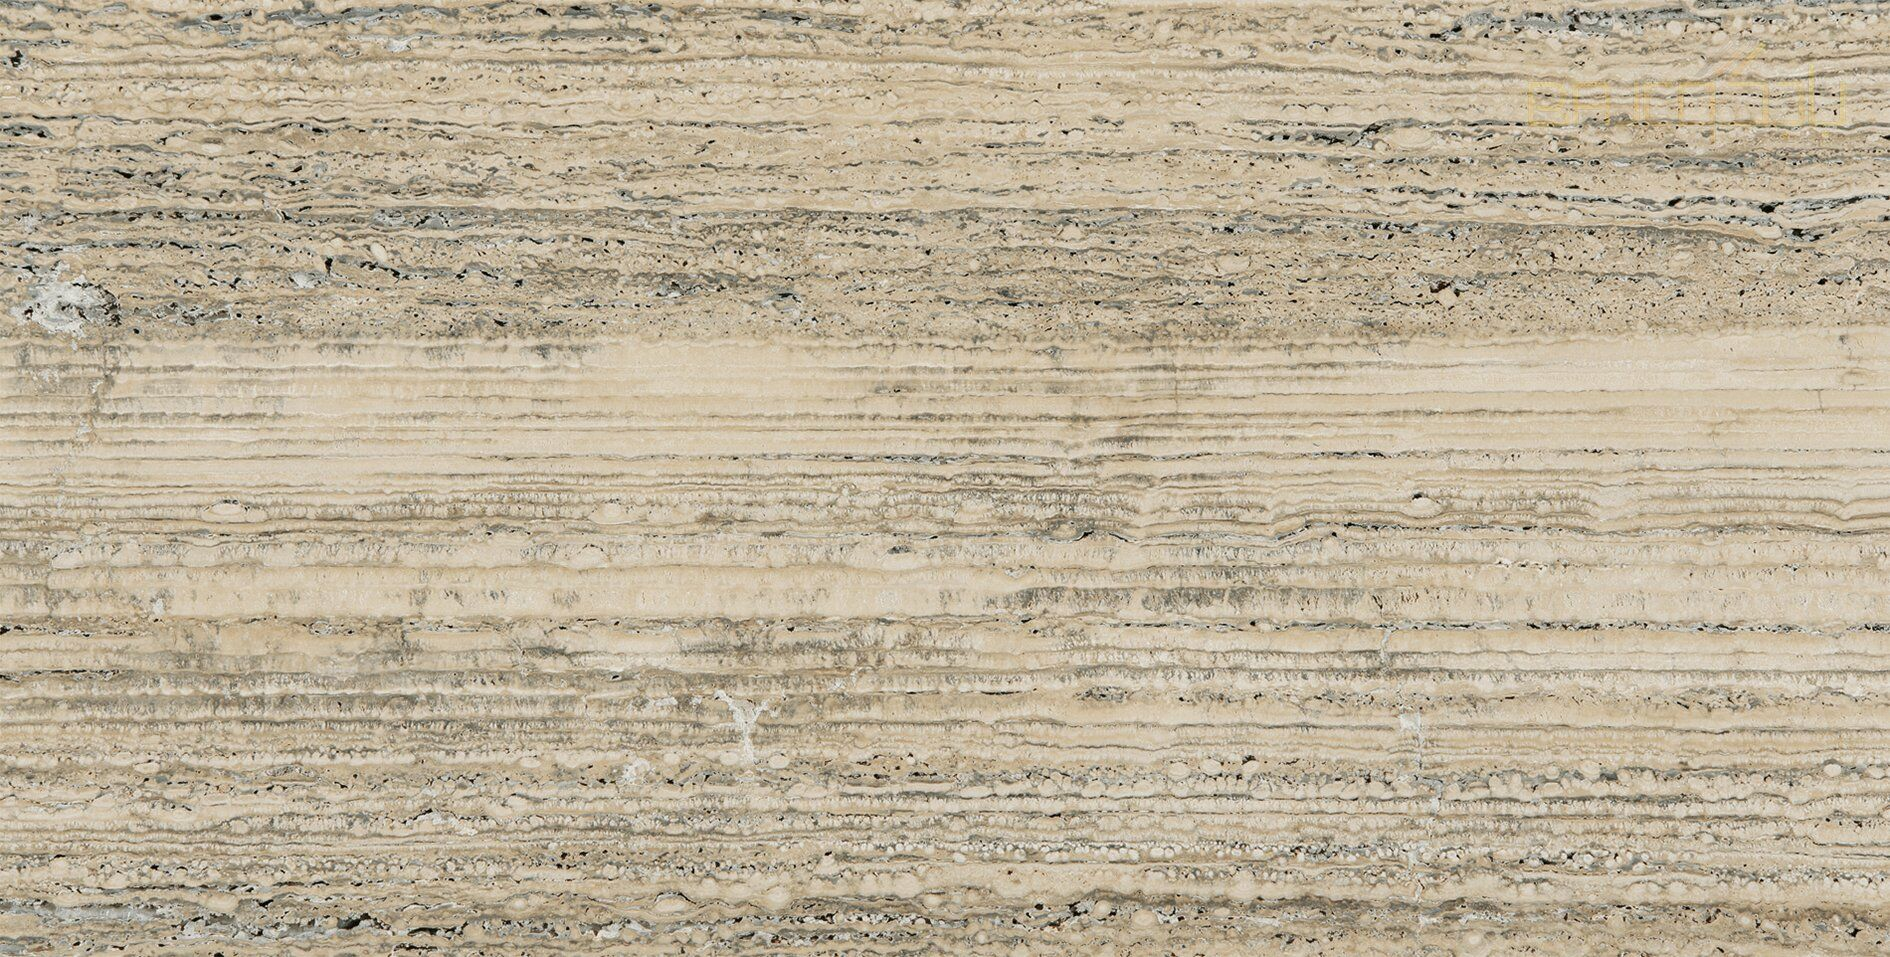 SILVER-PARADISO-TRAVERTINE ترافنتينو سيلفر باراديزو